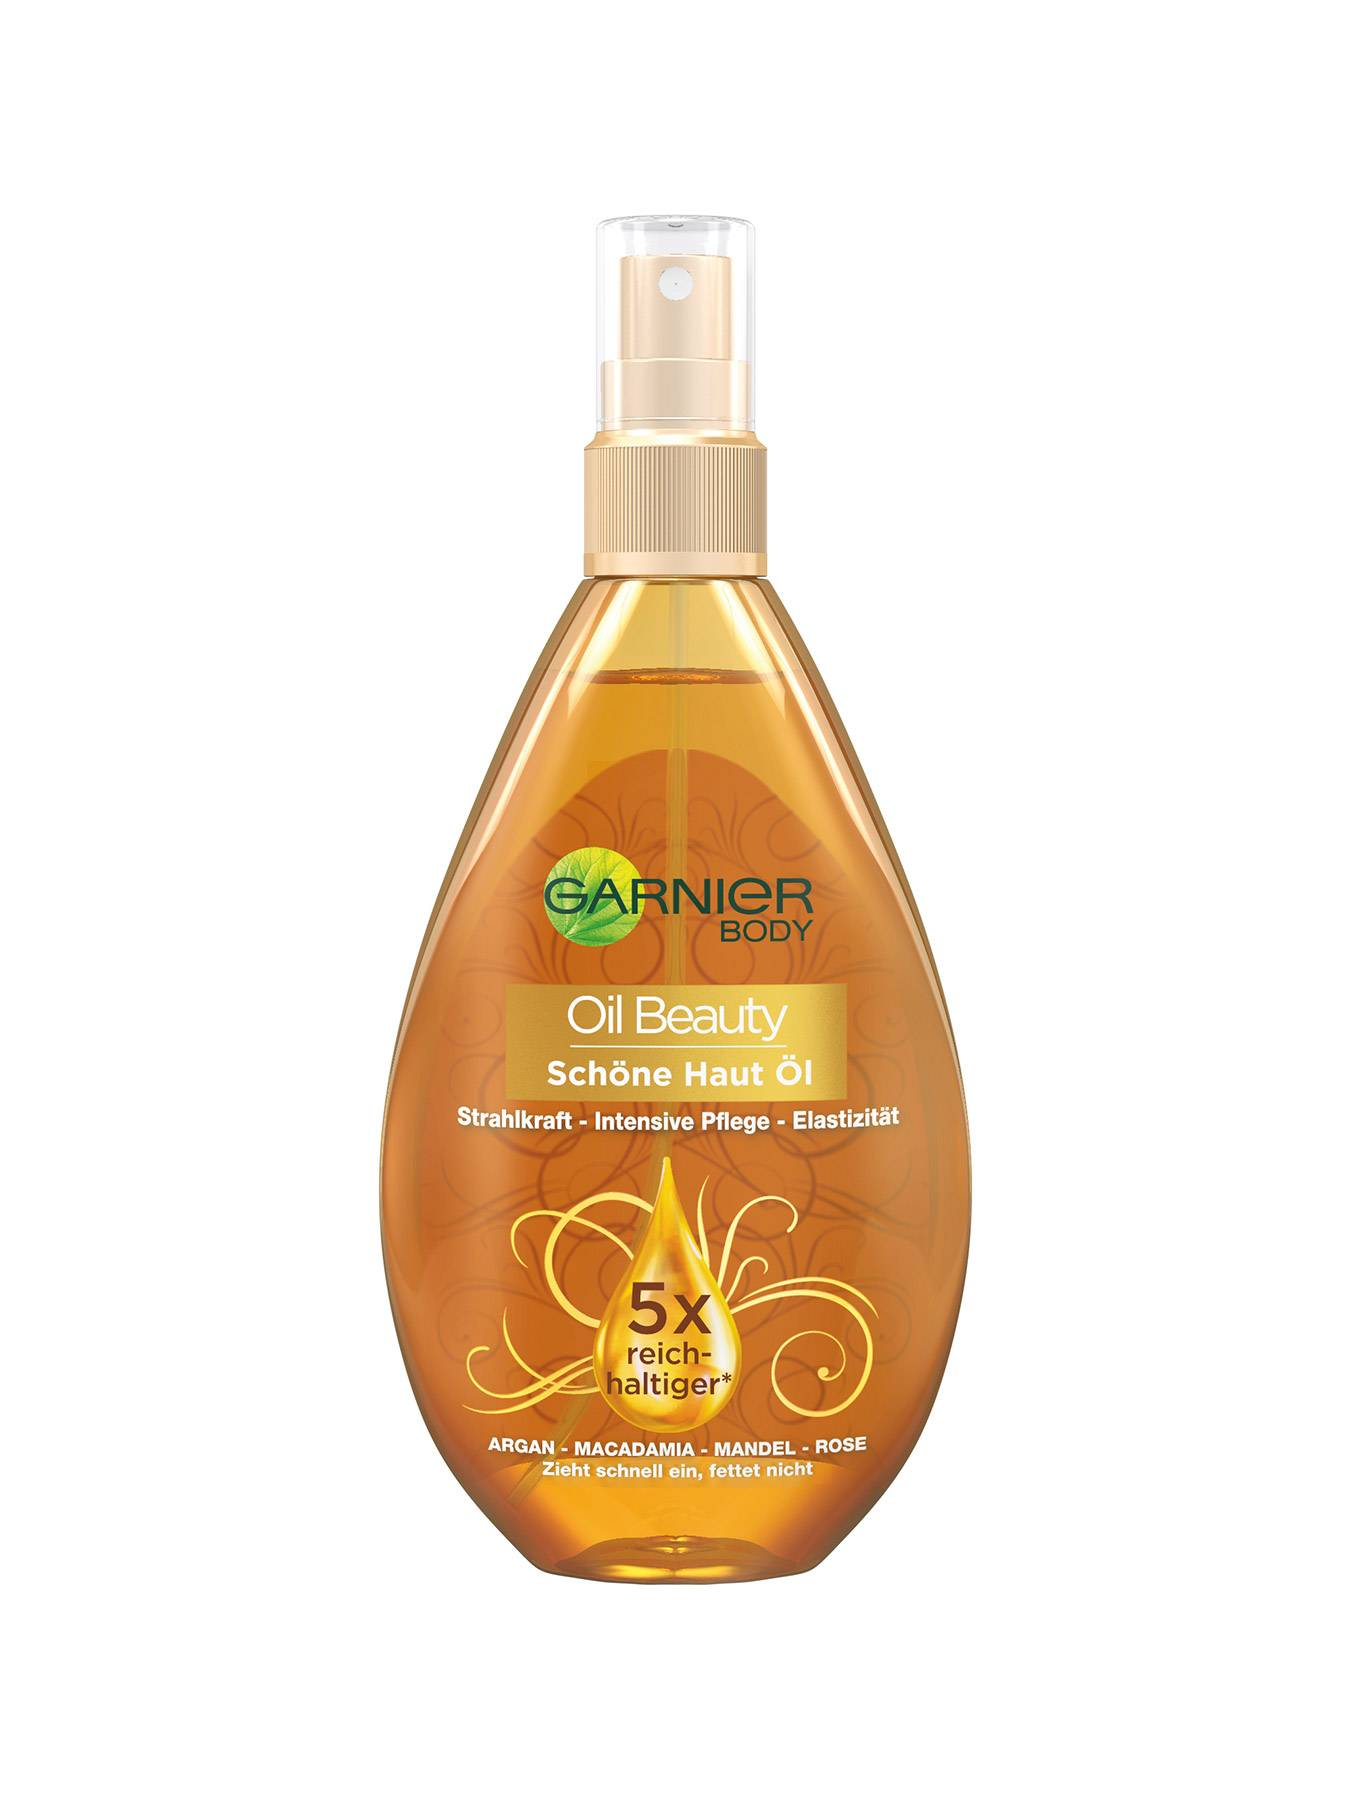 Schoene-Haut-Oel-Body-Oil-Beauty-150ml-Vorderseite-Garnier-Deutschland-gr